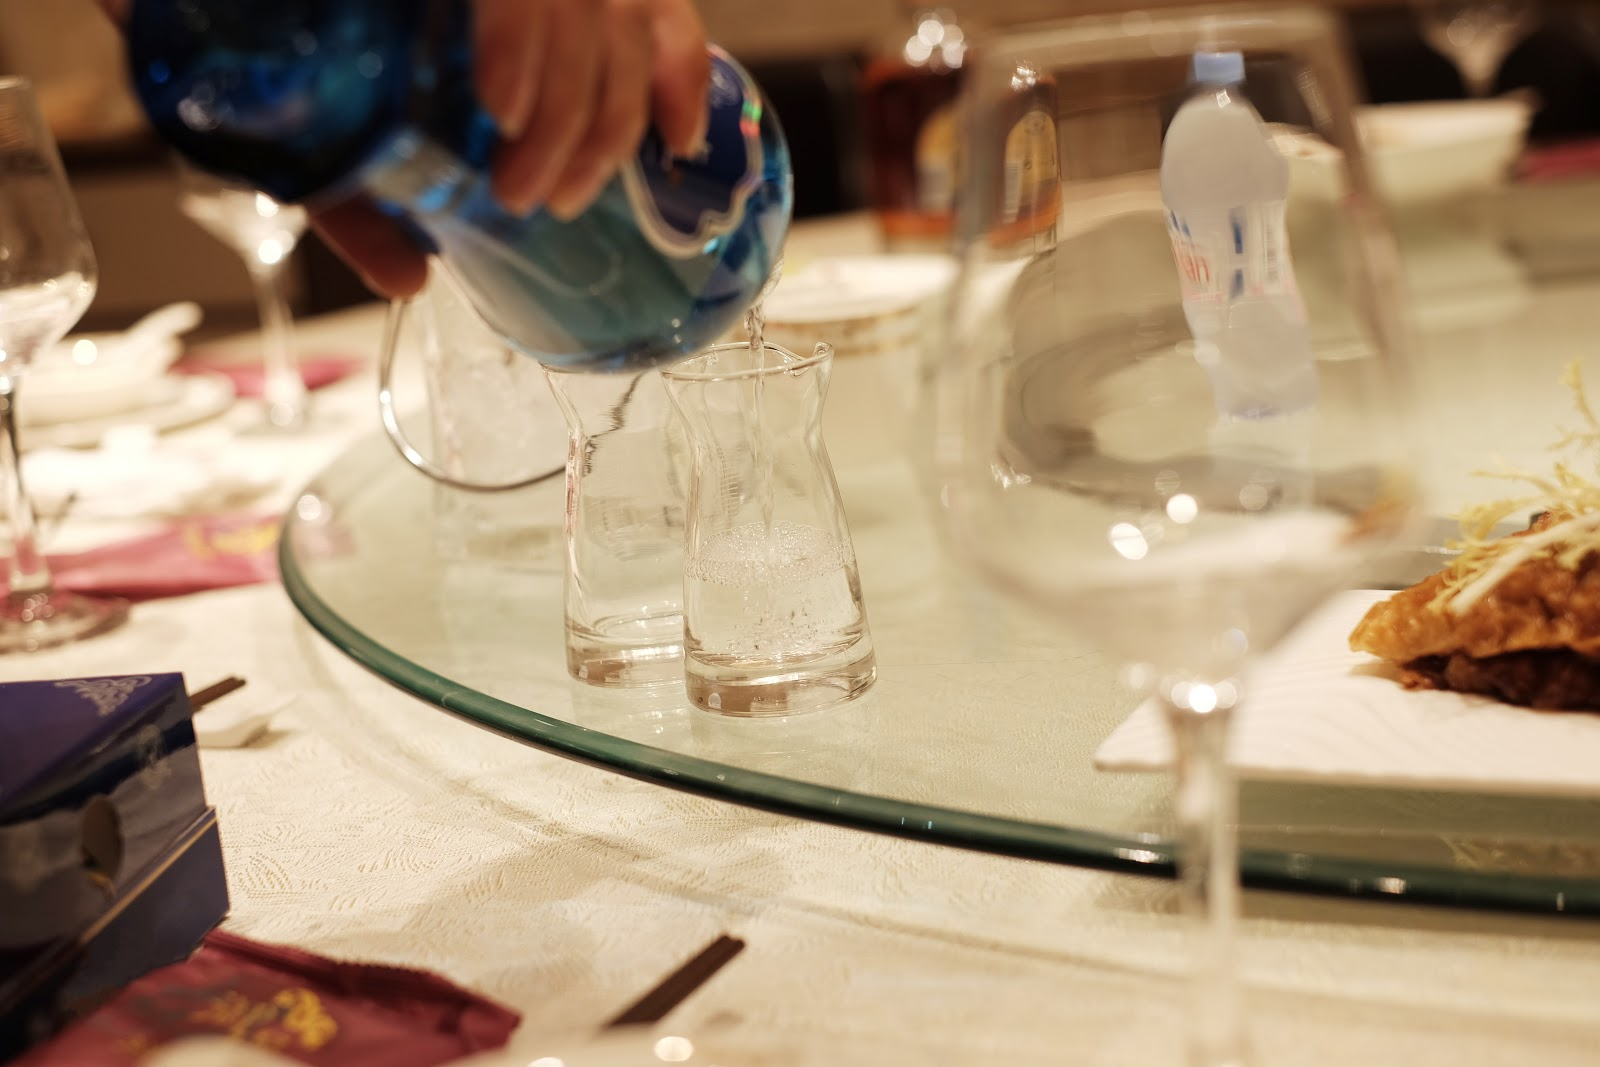 A Chinese dining table with strong spirit being poured into small glasses.